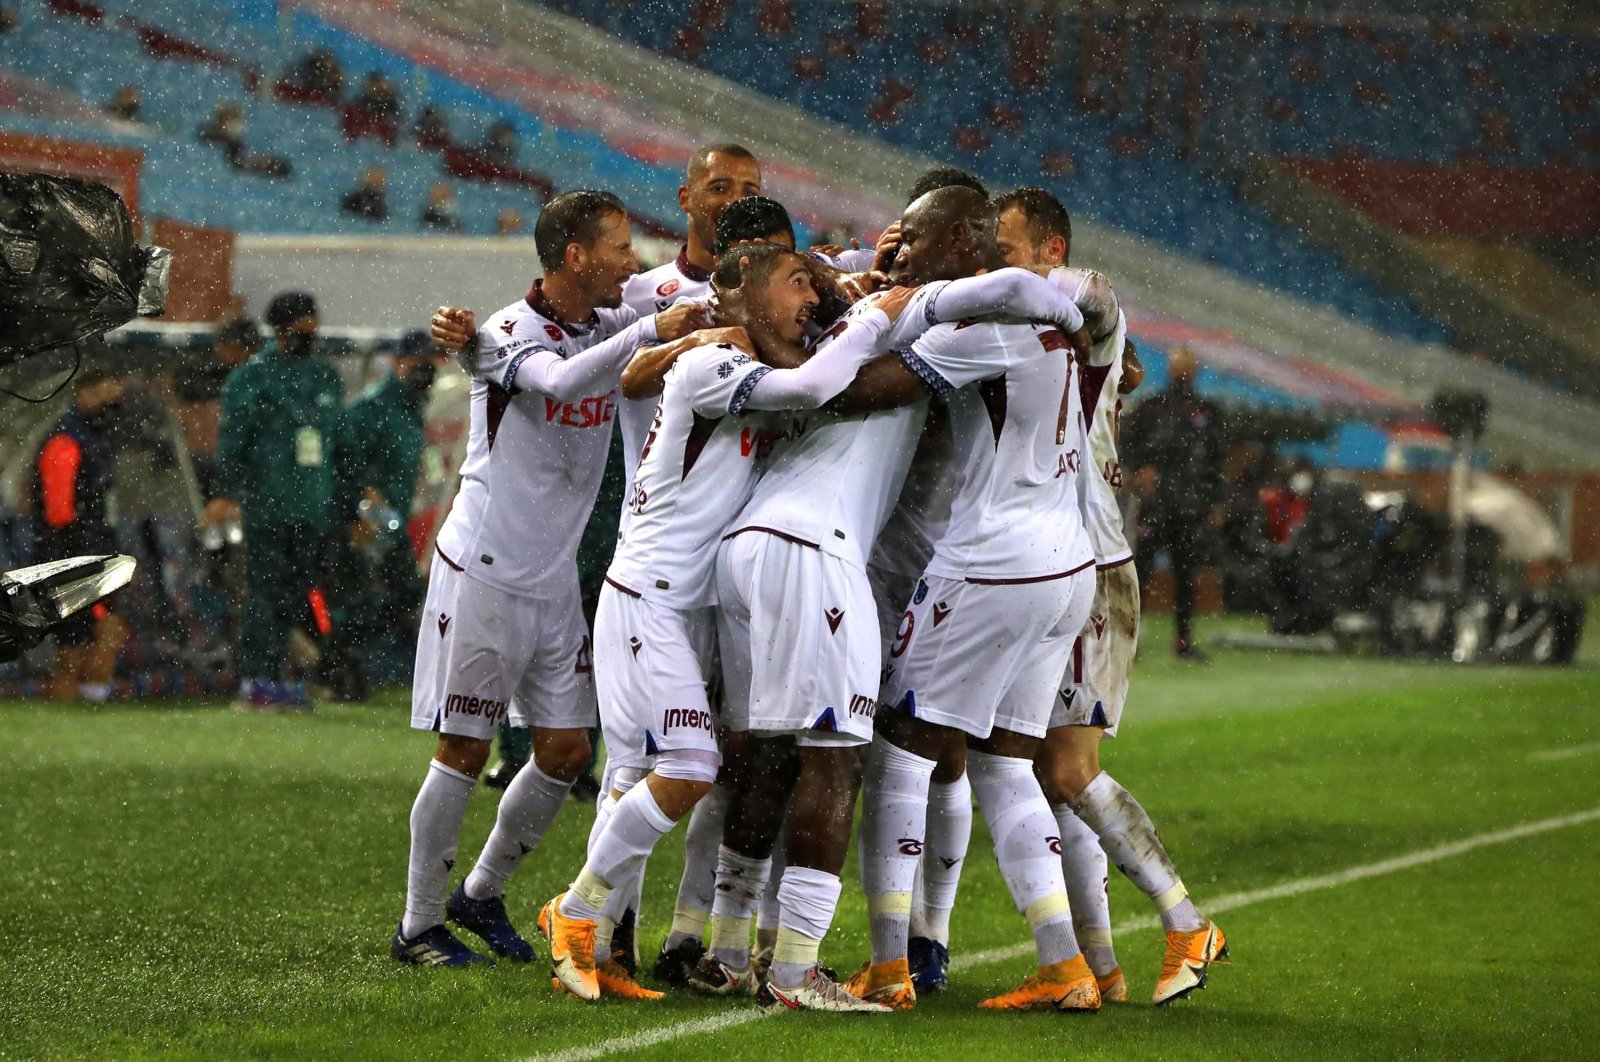 Trabzonspor players celebrate a victory after a Süper Lig match against Erzurumspor, in Trabzon, Turkey, Nov. 22. 2020. (DHA Photo)